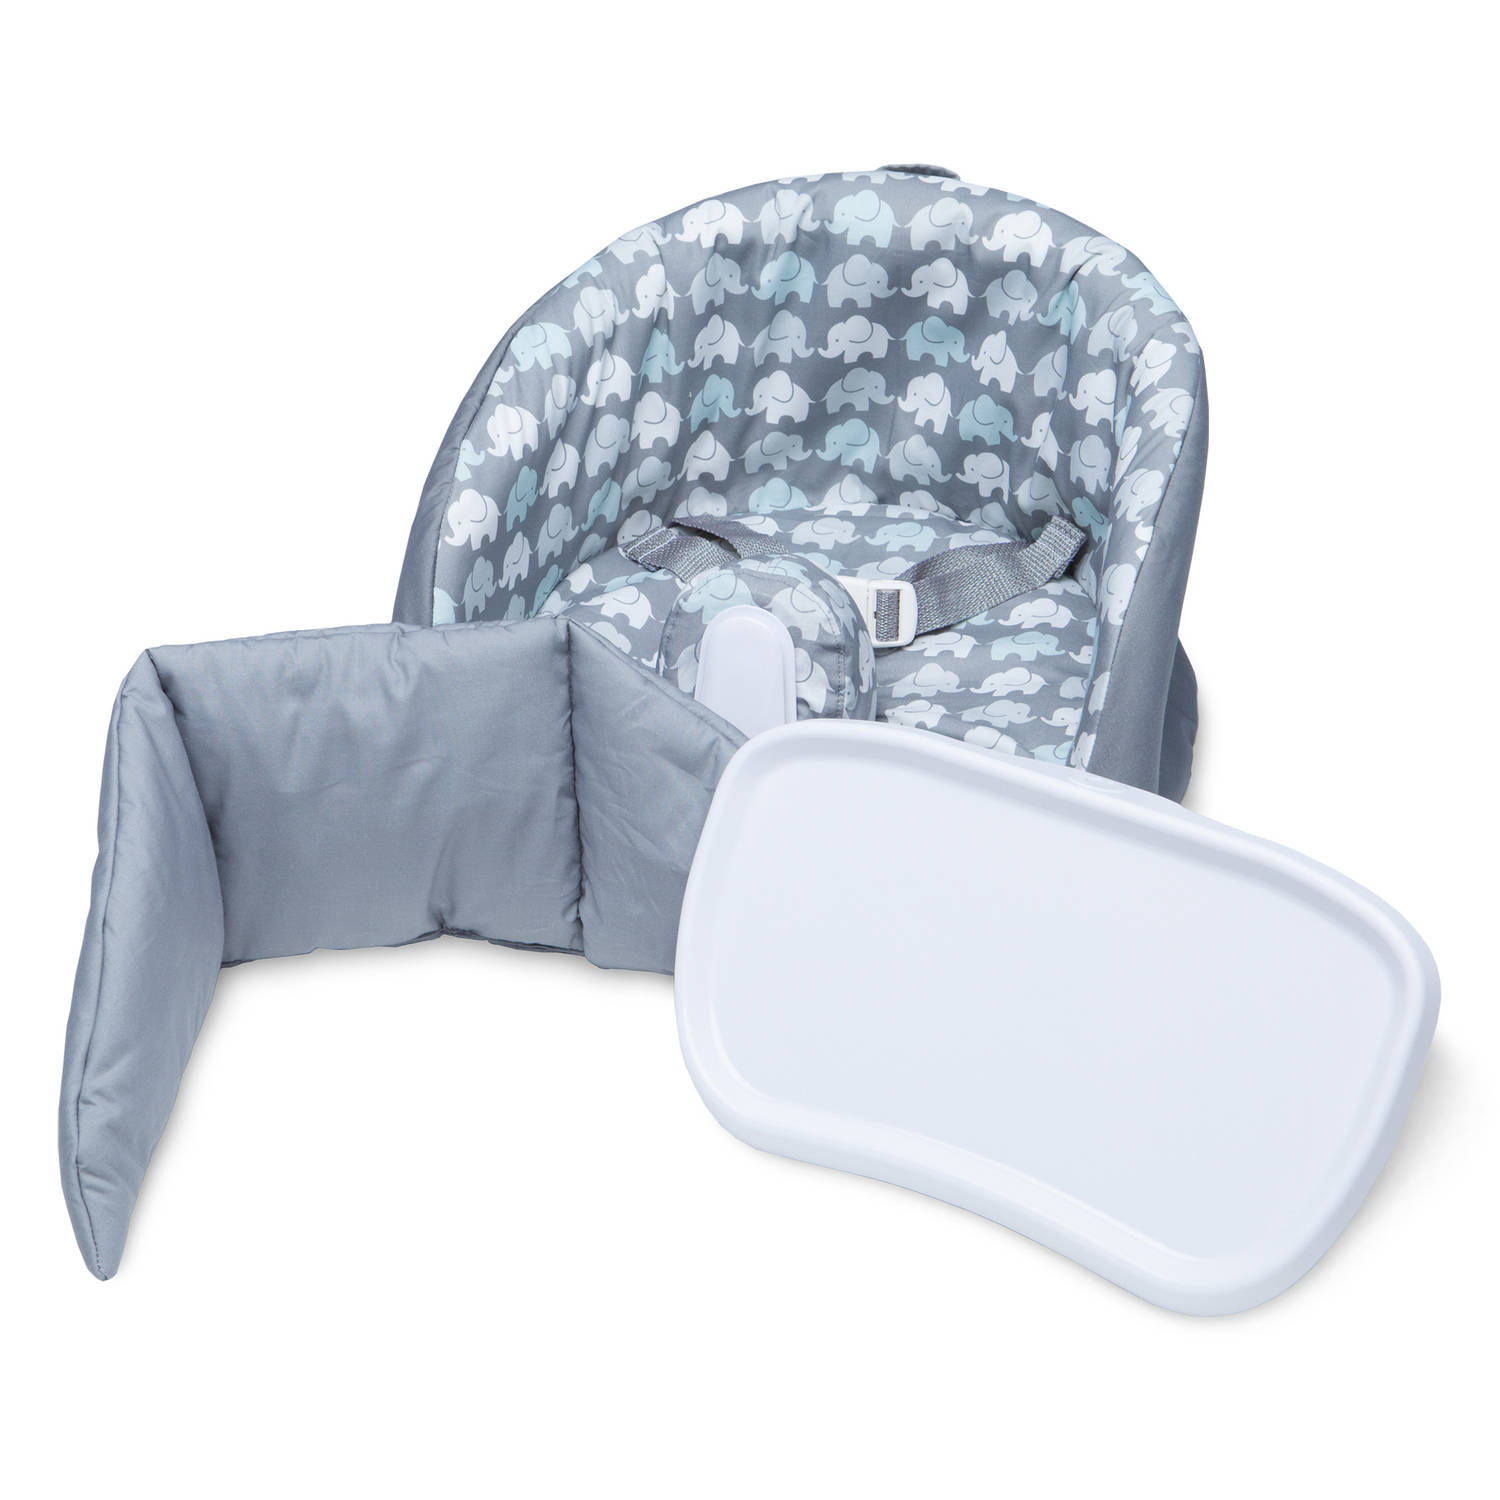 baby boppy chair recall all purpose styling booster seat elephant walk gray walmart com